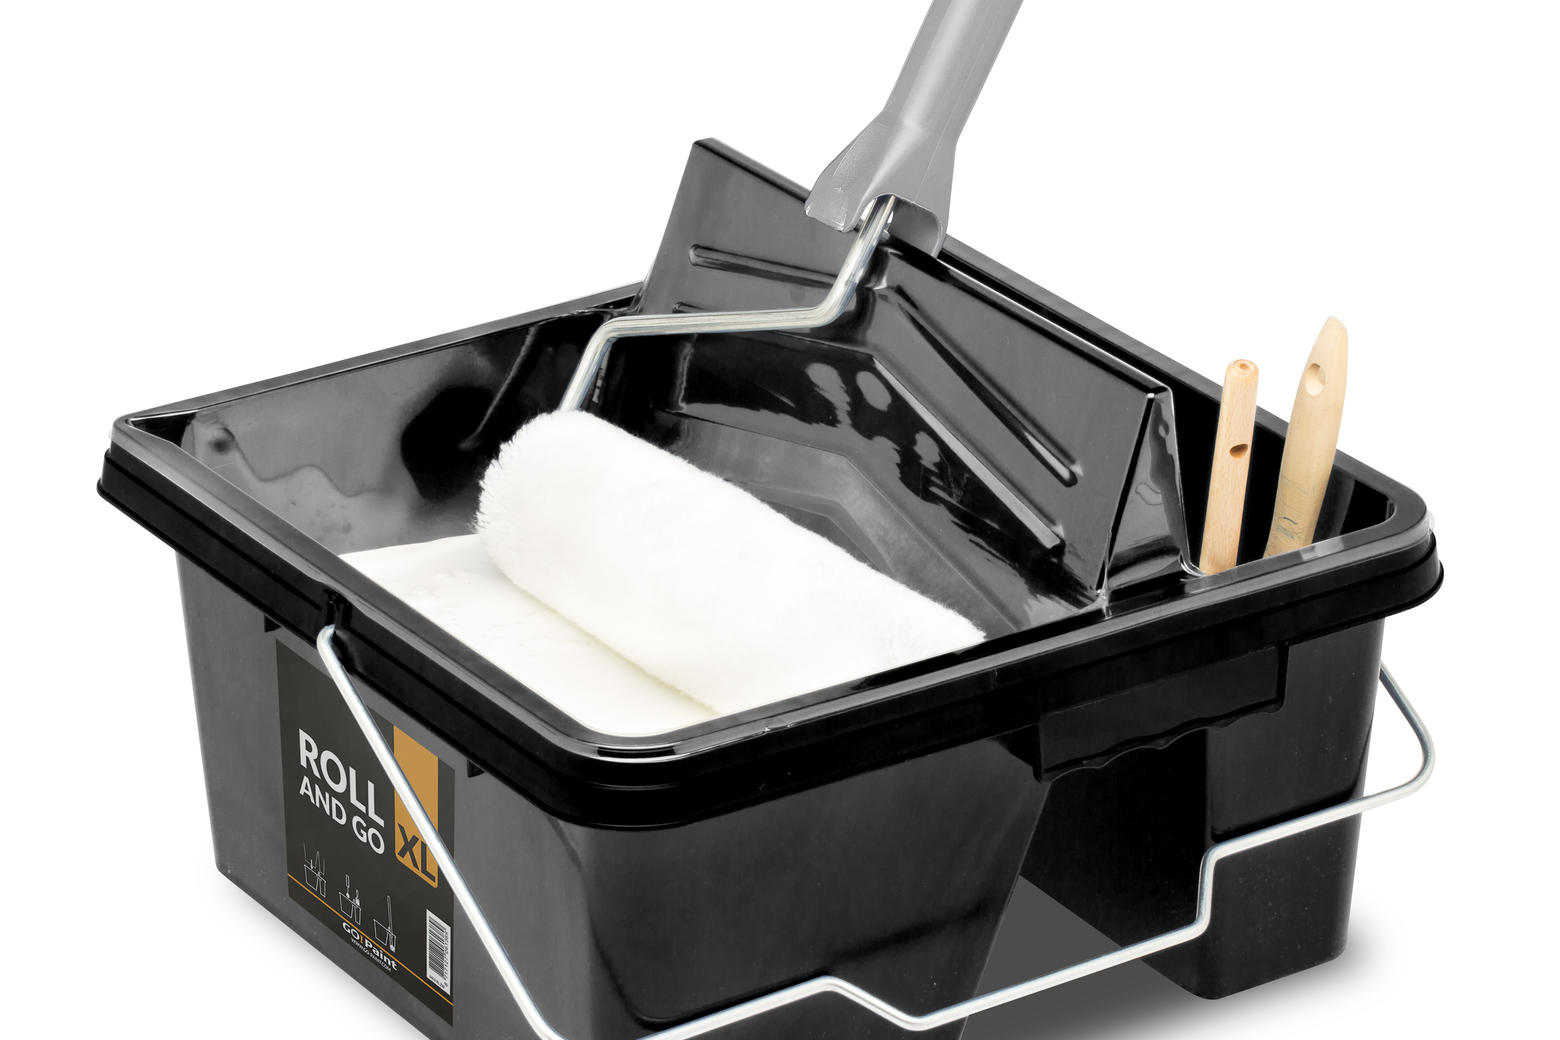 The Roll and Go XL is a stable paint tray with two compartments: one for rolling paint and another for your other materials.